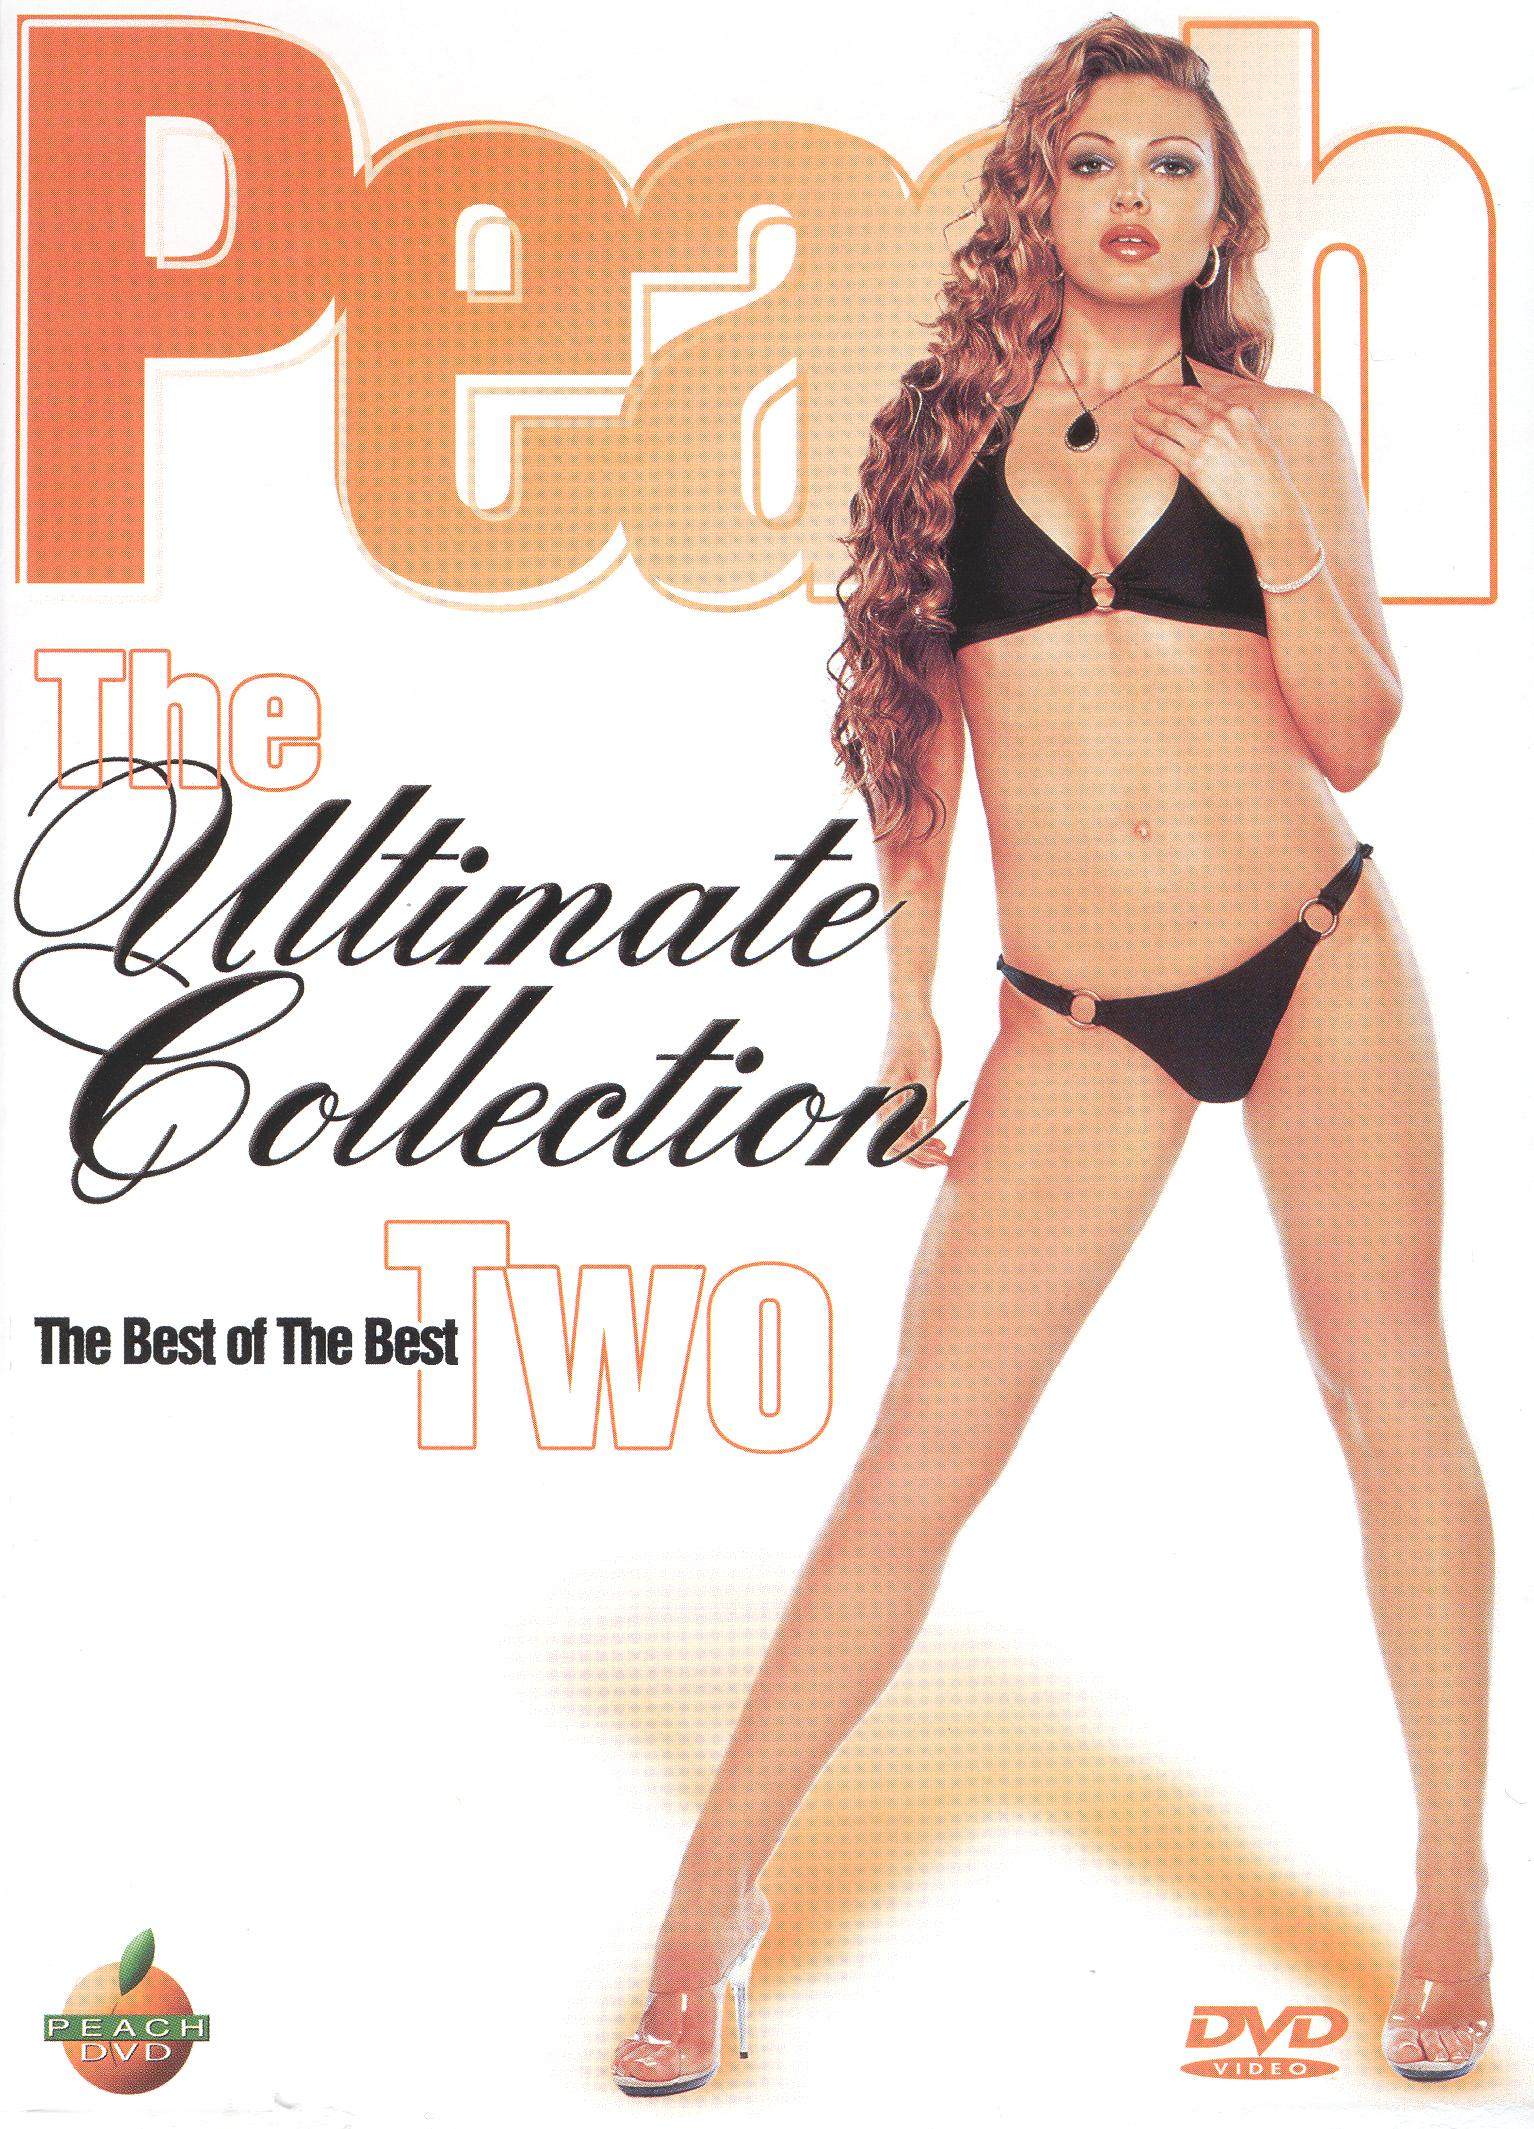 Peach: The Ultimate Collection Two - The Best of the Best